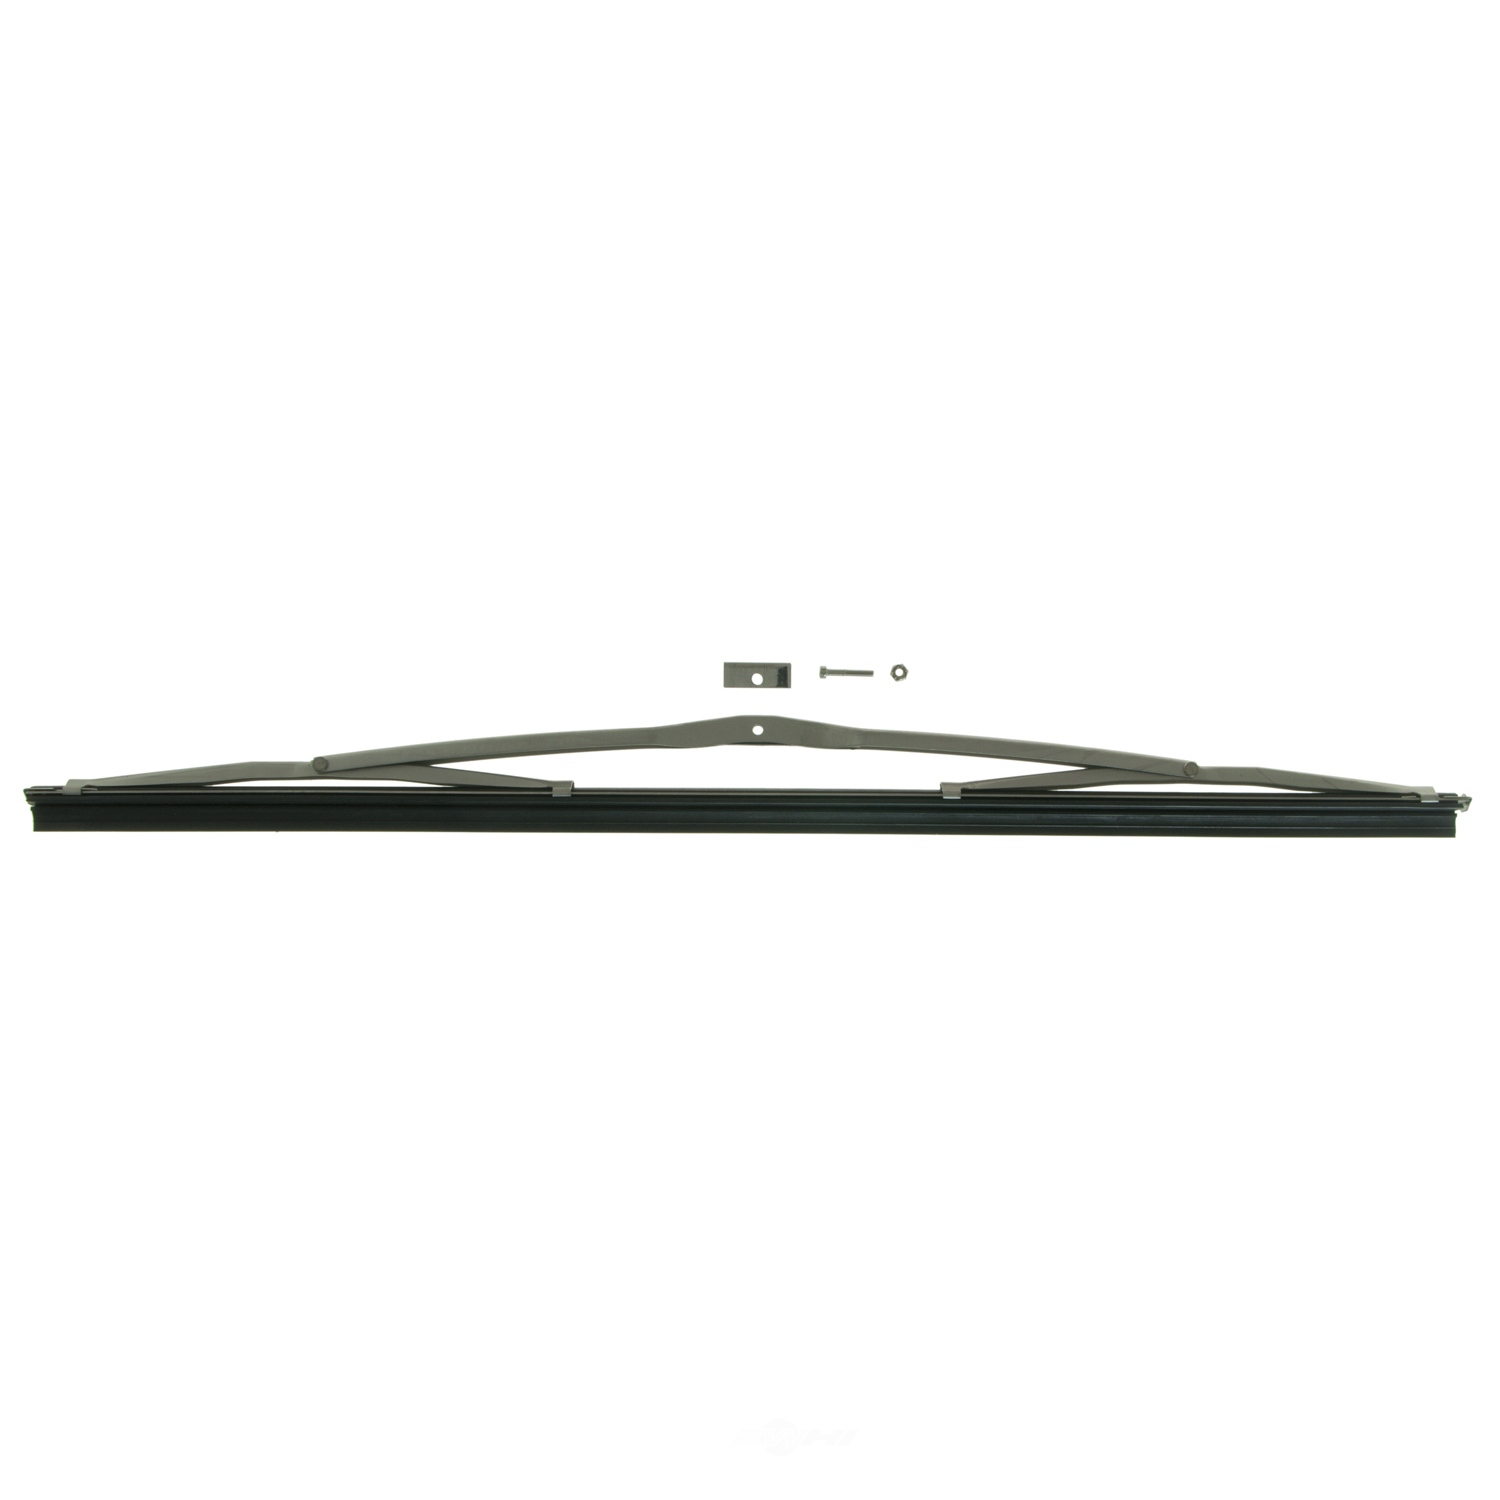 ANCO WIPER PRODUCTS - Clear-flex Wiper Blade - ANC 52-20